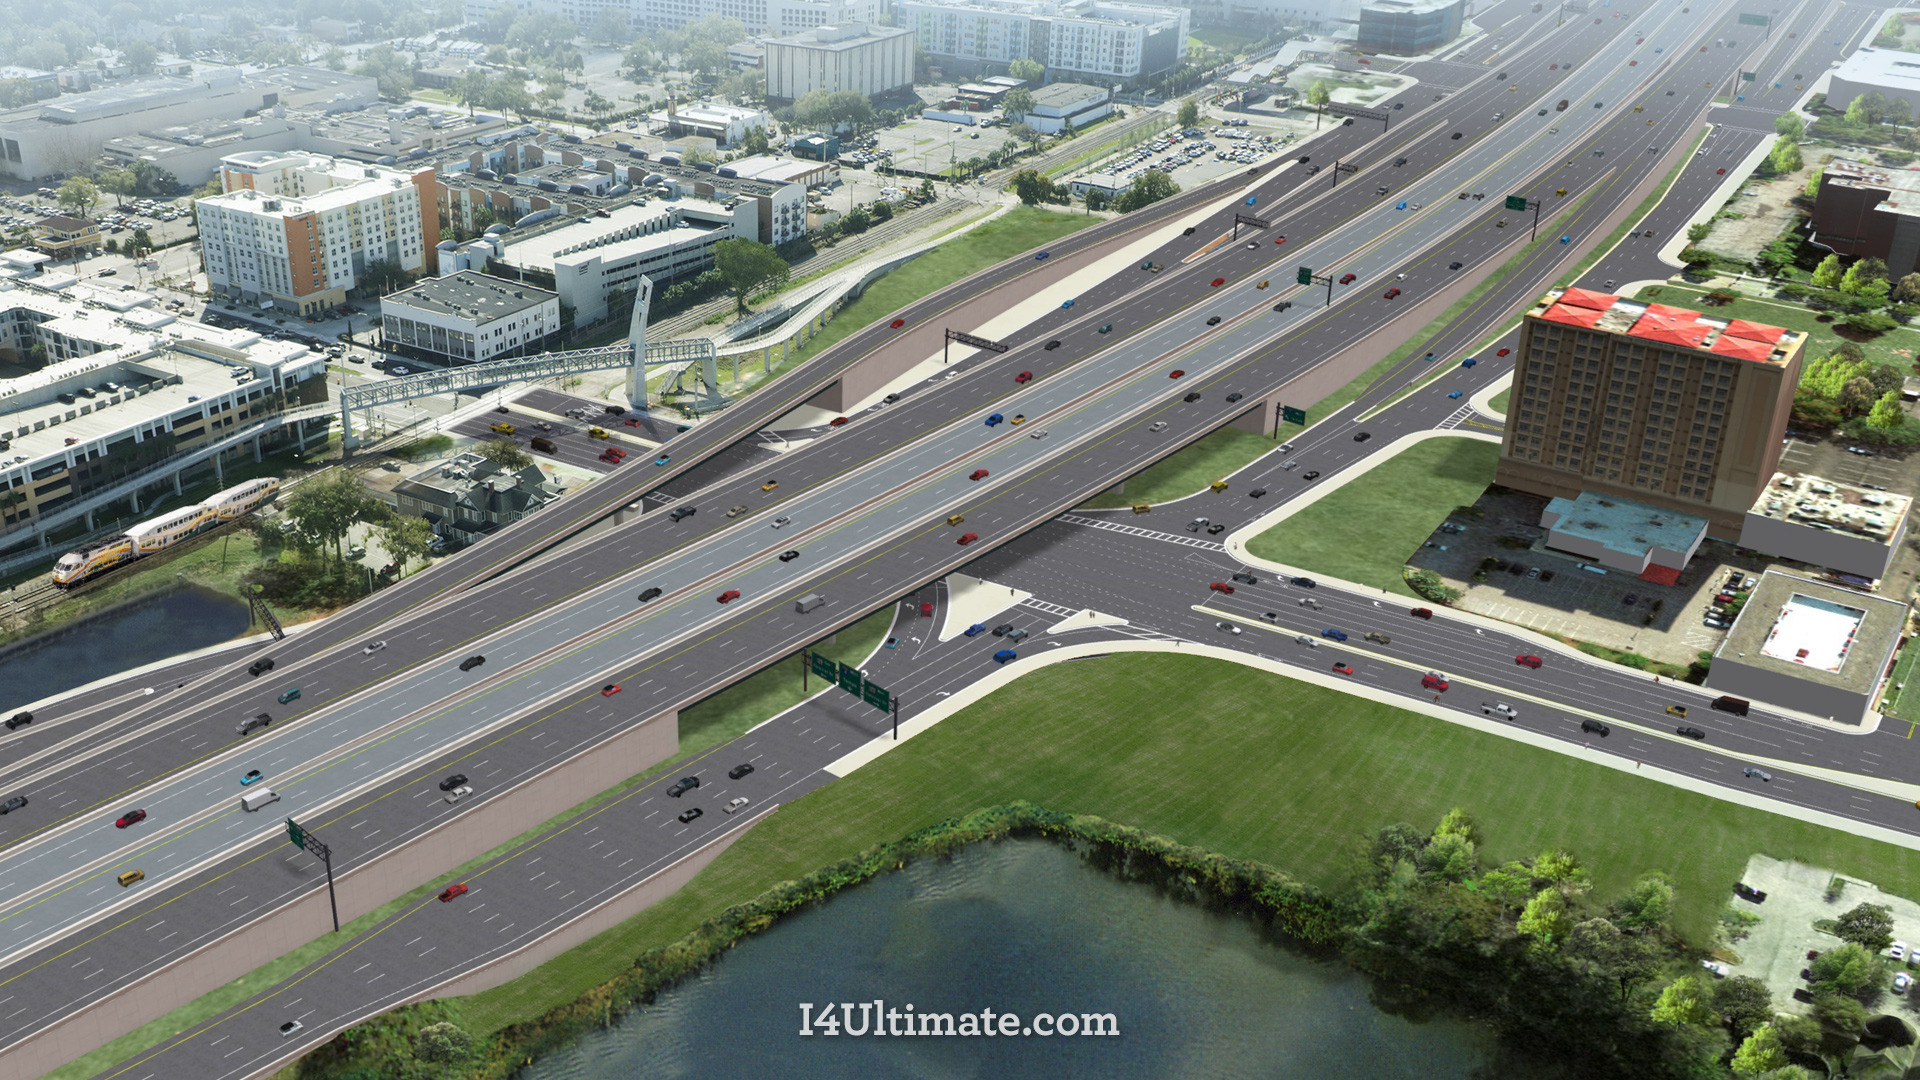 I-4-Ultimate-Colonial-Dr-S.R.50-rendering-20200318B-cj-1920x1080